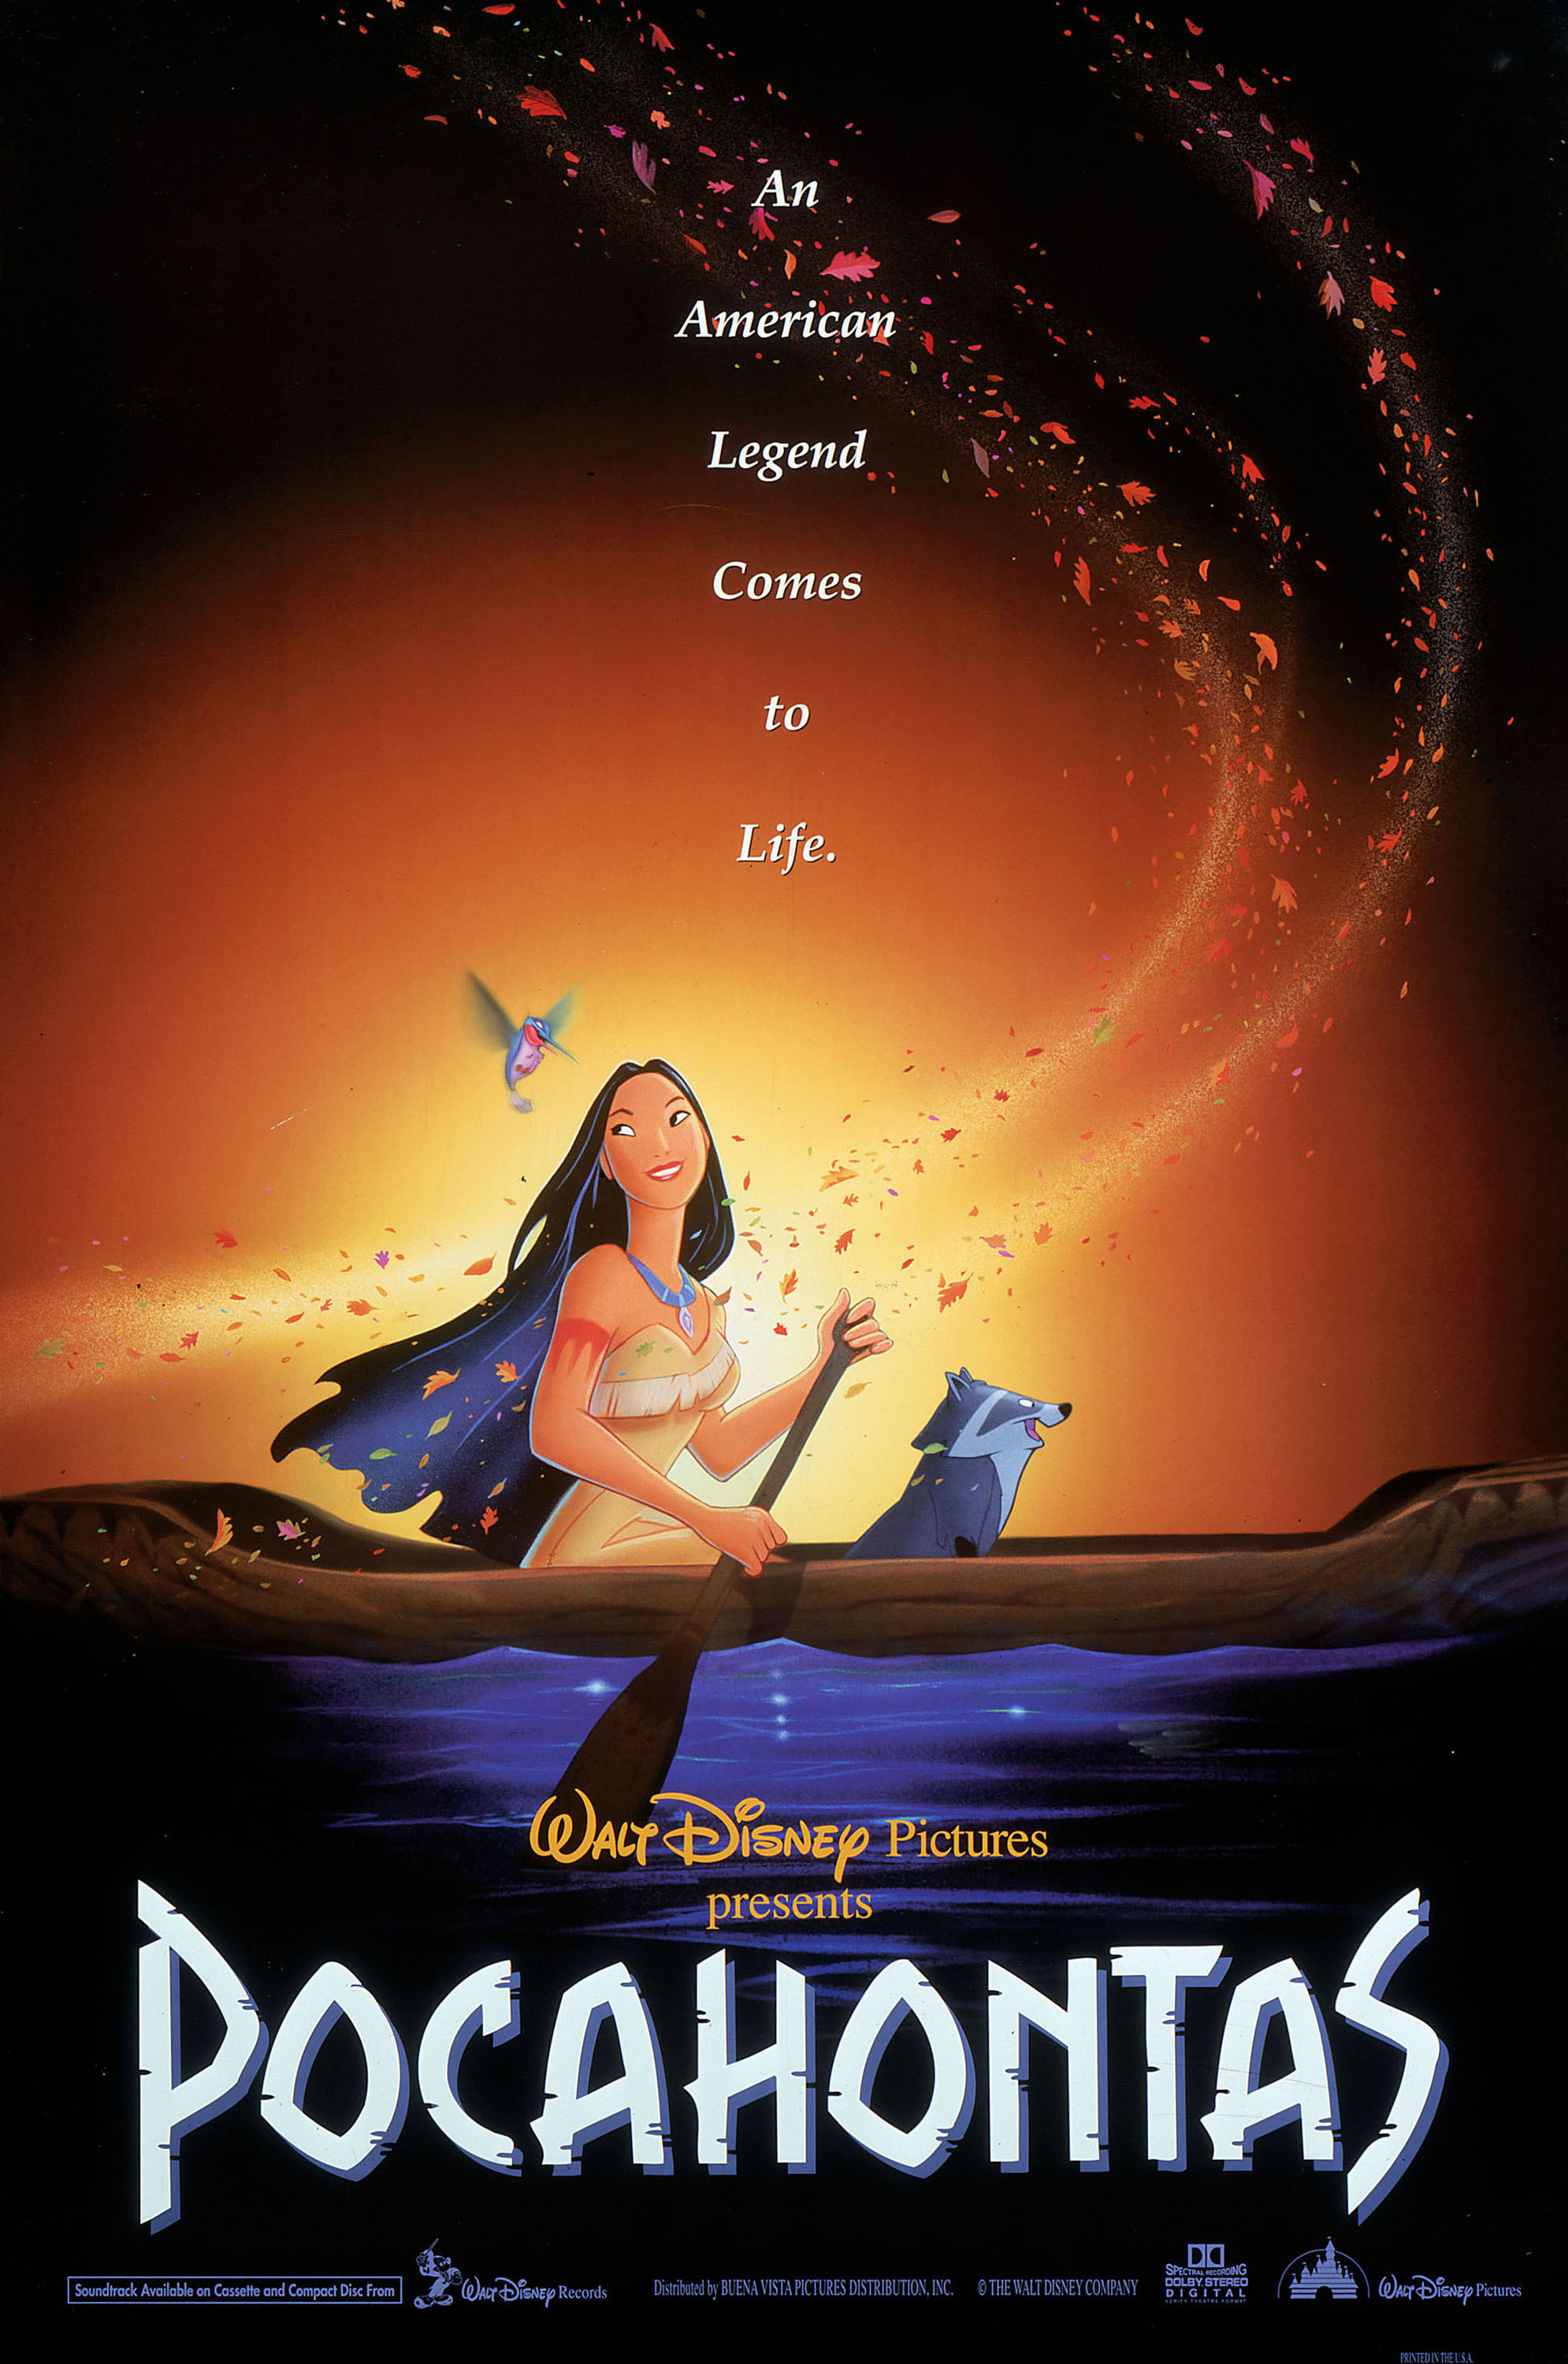 http://vignette2.wikia.nocookie.net/disney/images/5/57/Pocahontasposter.jpg/revision/latest?cb=20160617124923